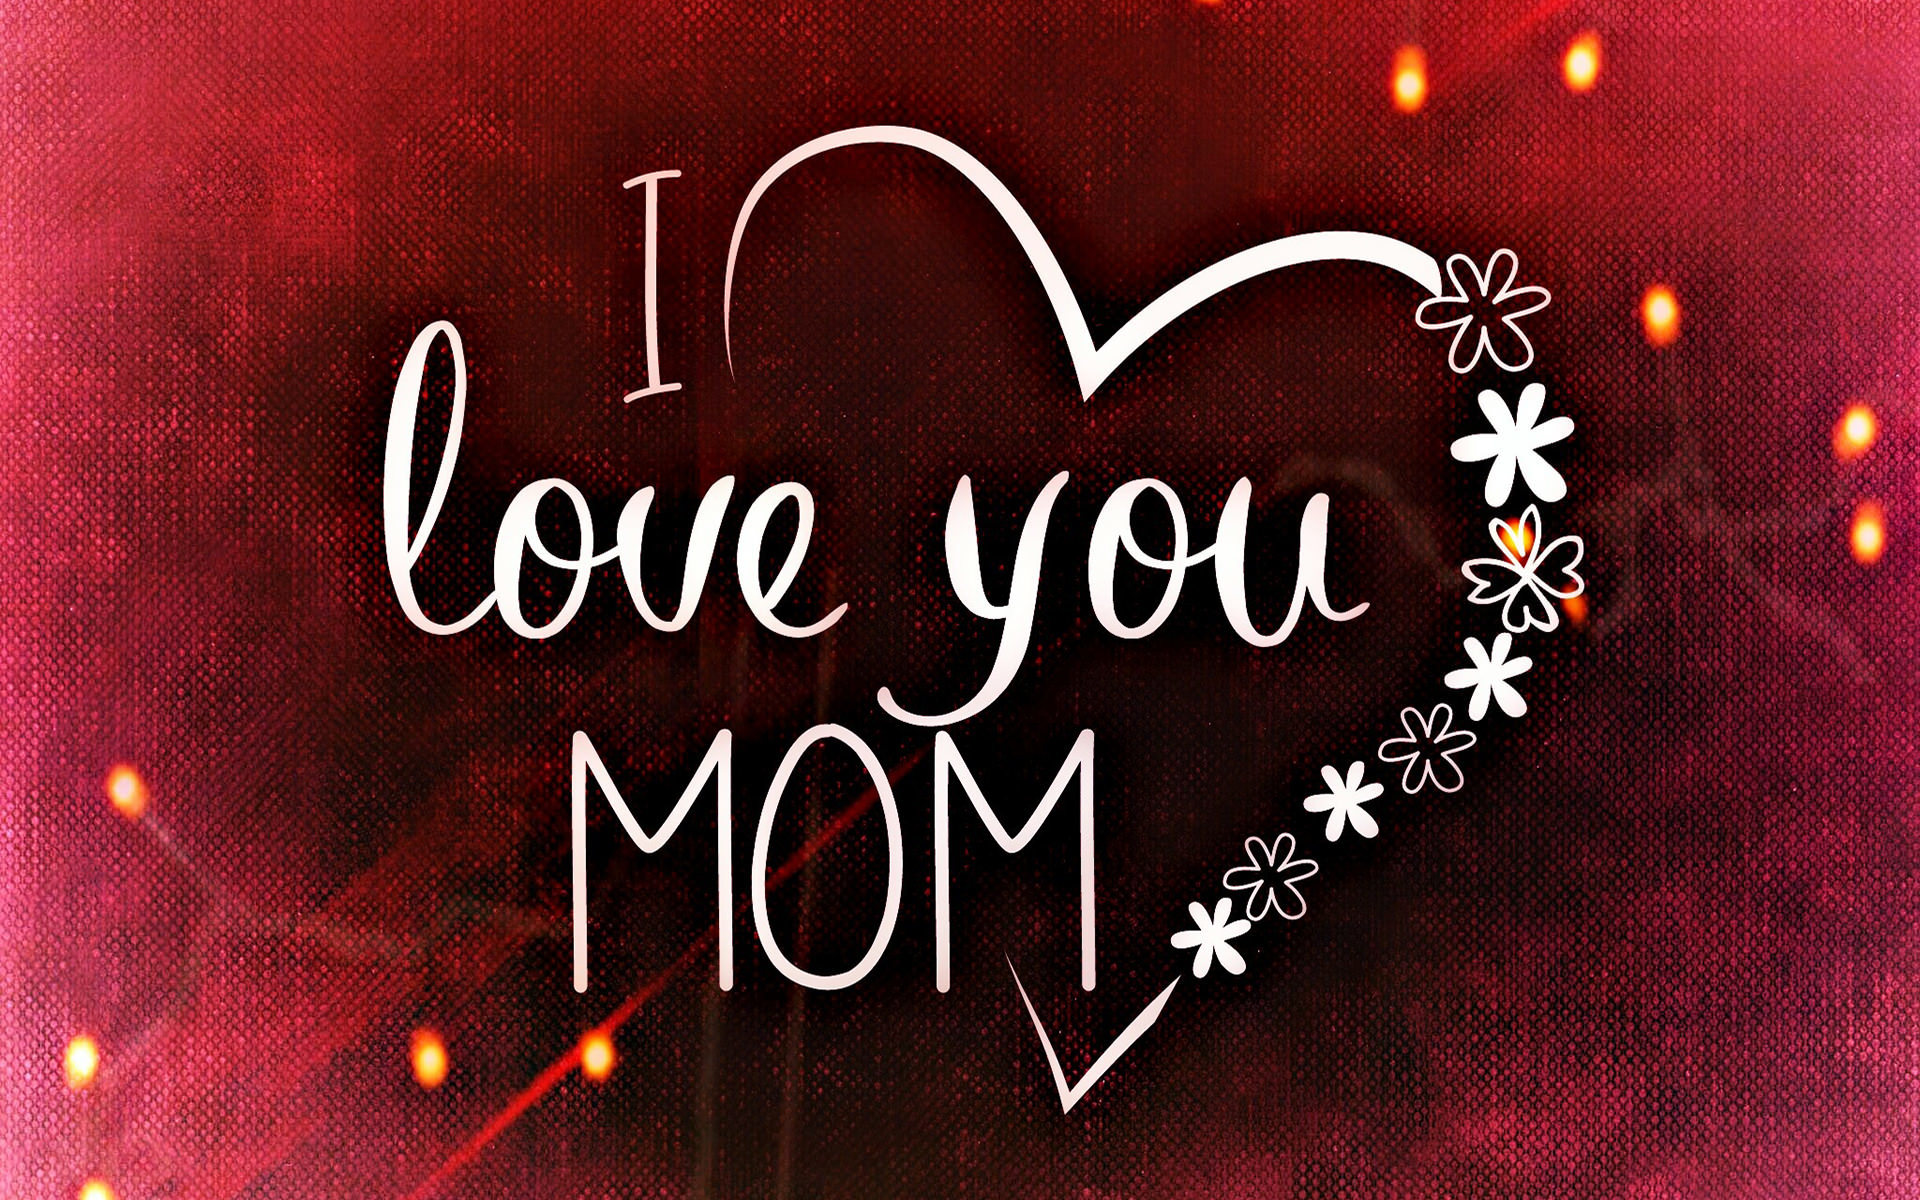 I Love You Mom Images Images amp Pictures   Becuo 1920x1200